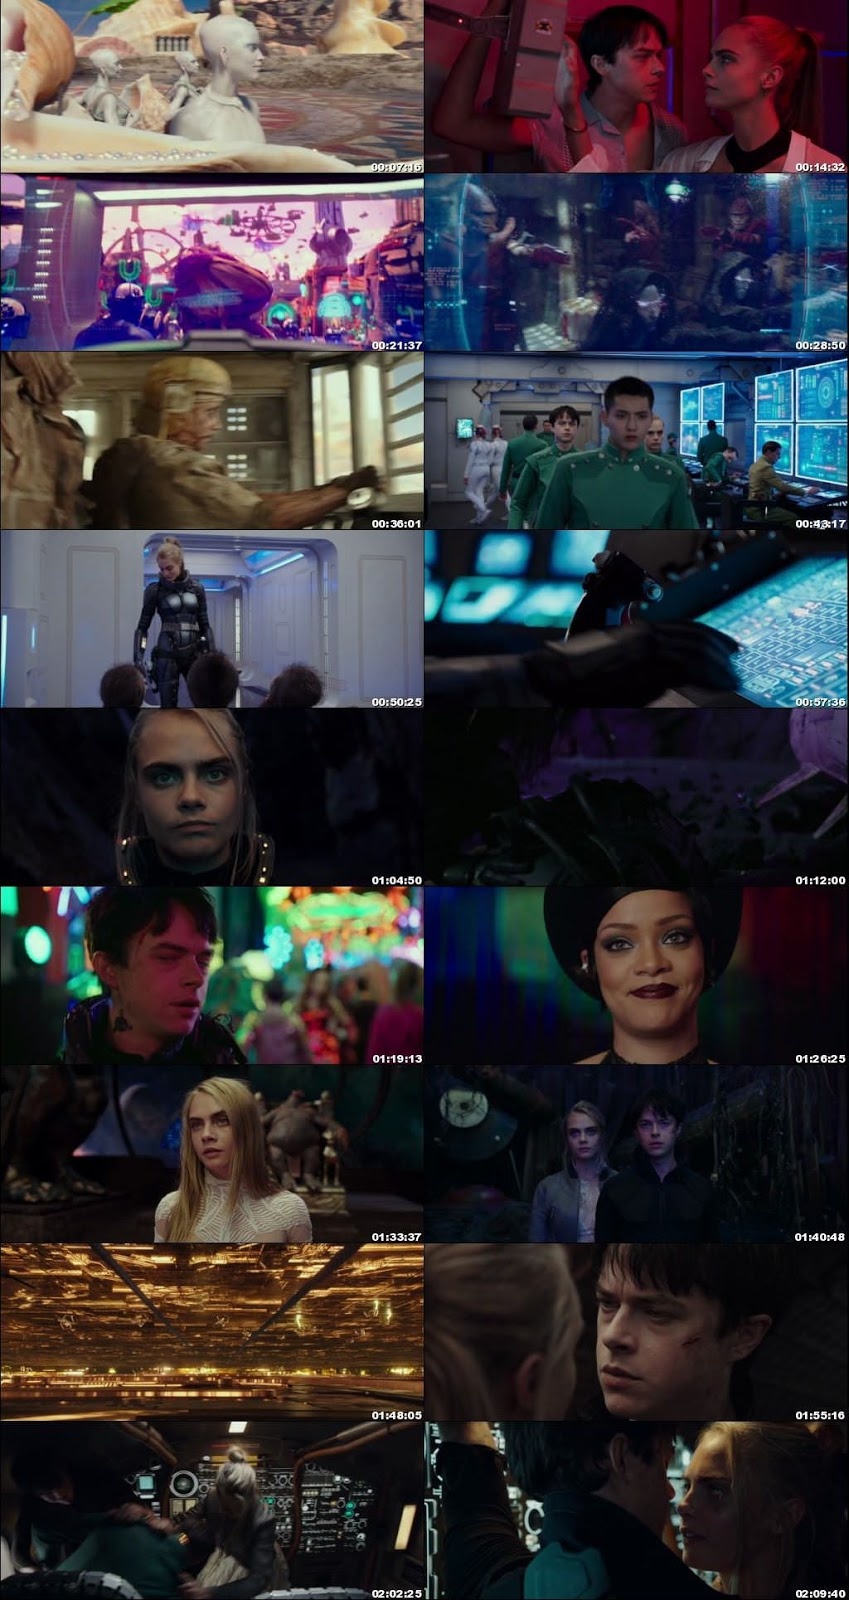 Download Valerian and the City of a Thousand Planets 2017 Dual Audio DD 5.1ch ORG Hindi 1GB BluRay 720p movie